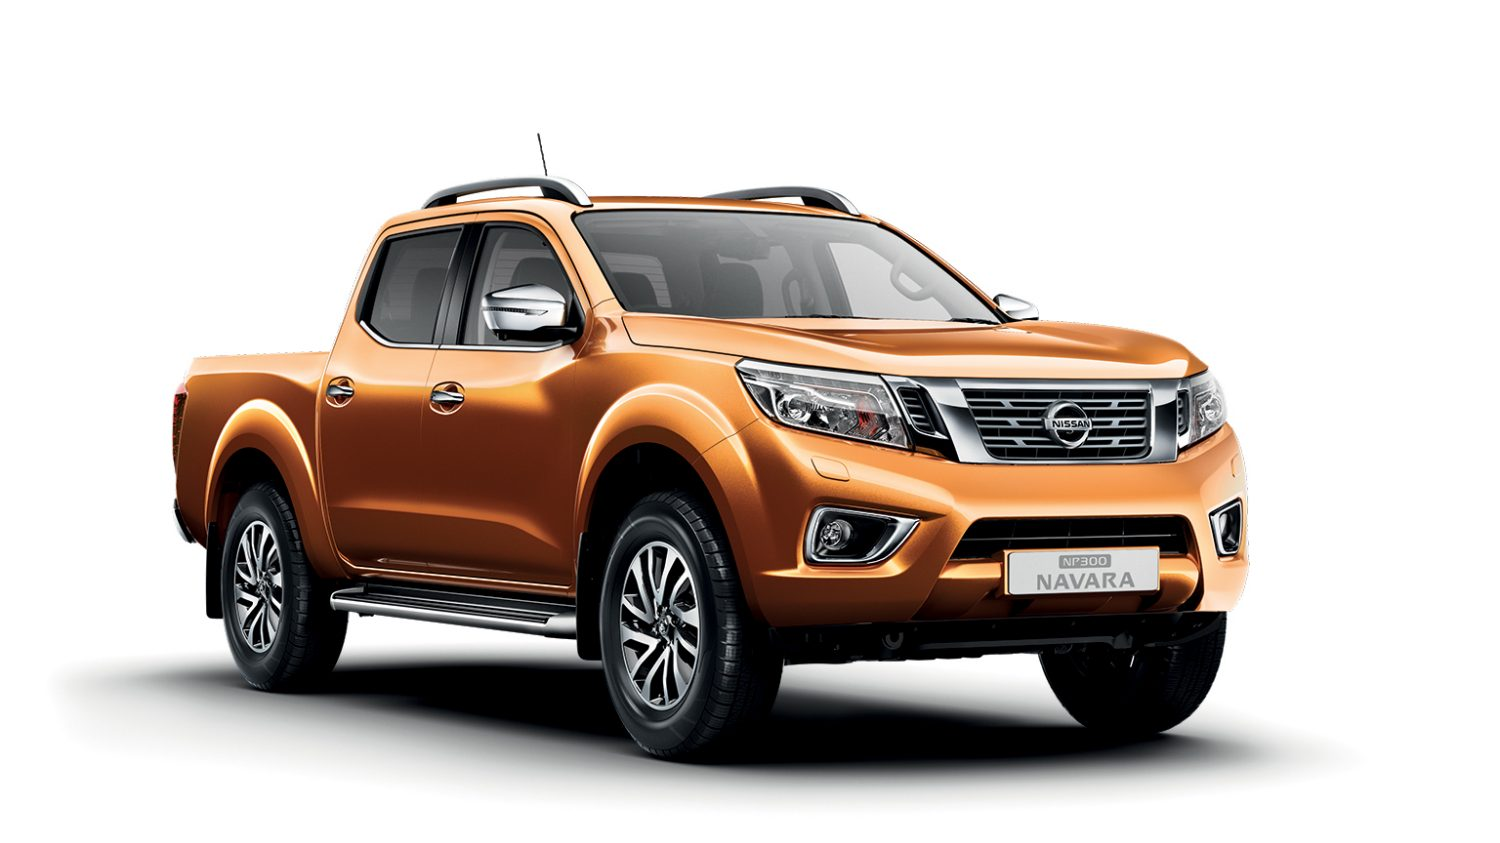 design all new np300 navara pick up truck 4x4 nissan. Black Bedroom Furniture Sets. Home Design Ideas